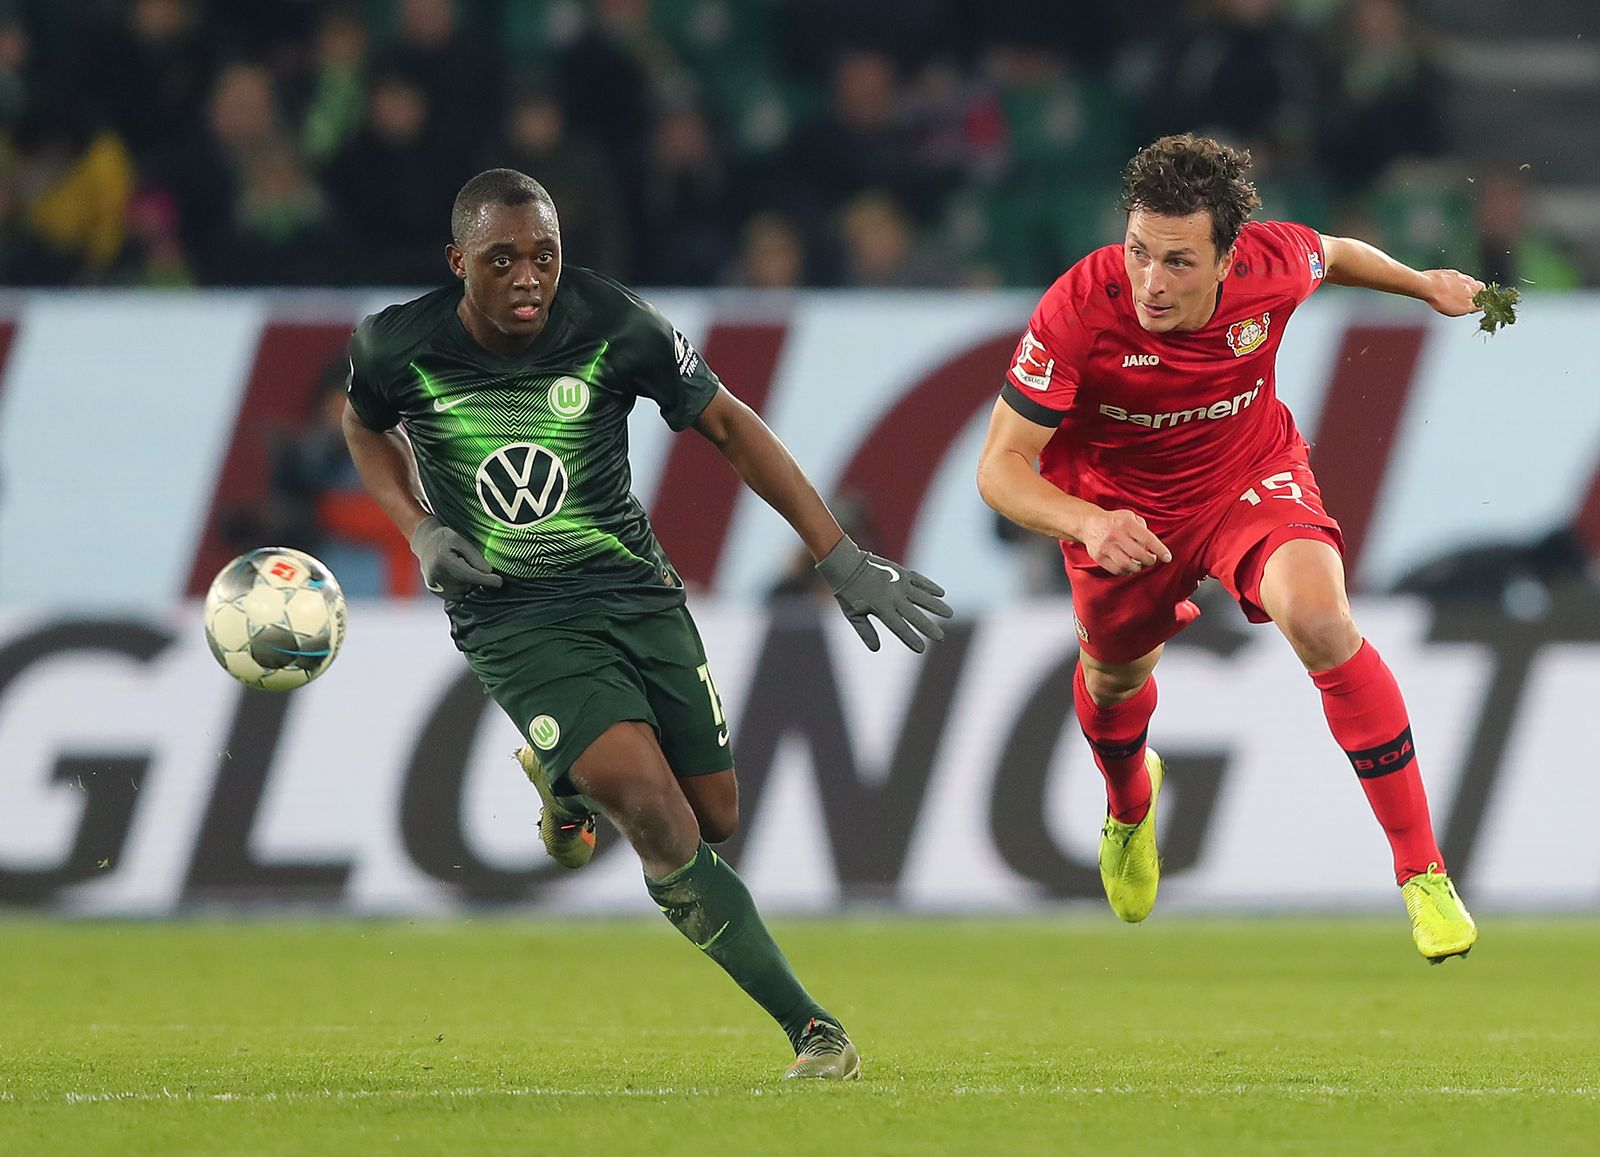 Jerome Roussillon (VfL Wolfsburg), Julian Baumgartlinger (Bayer 04 Leverkusen) DFL REGULATIONS PROHIBIT ANY USE OF PHOT